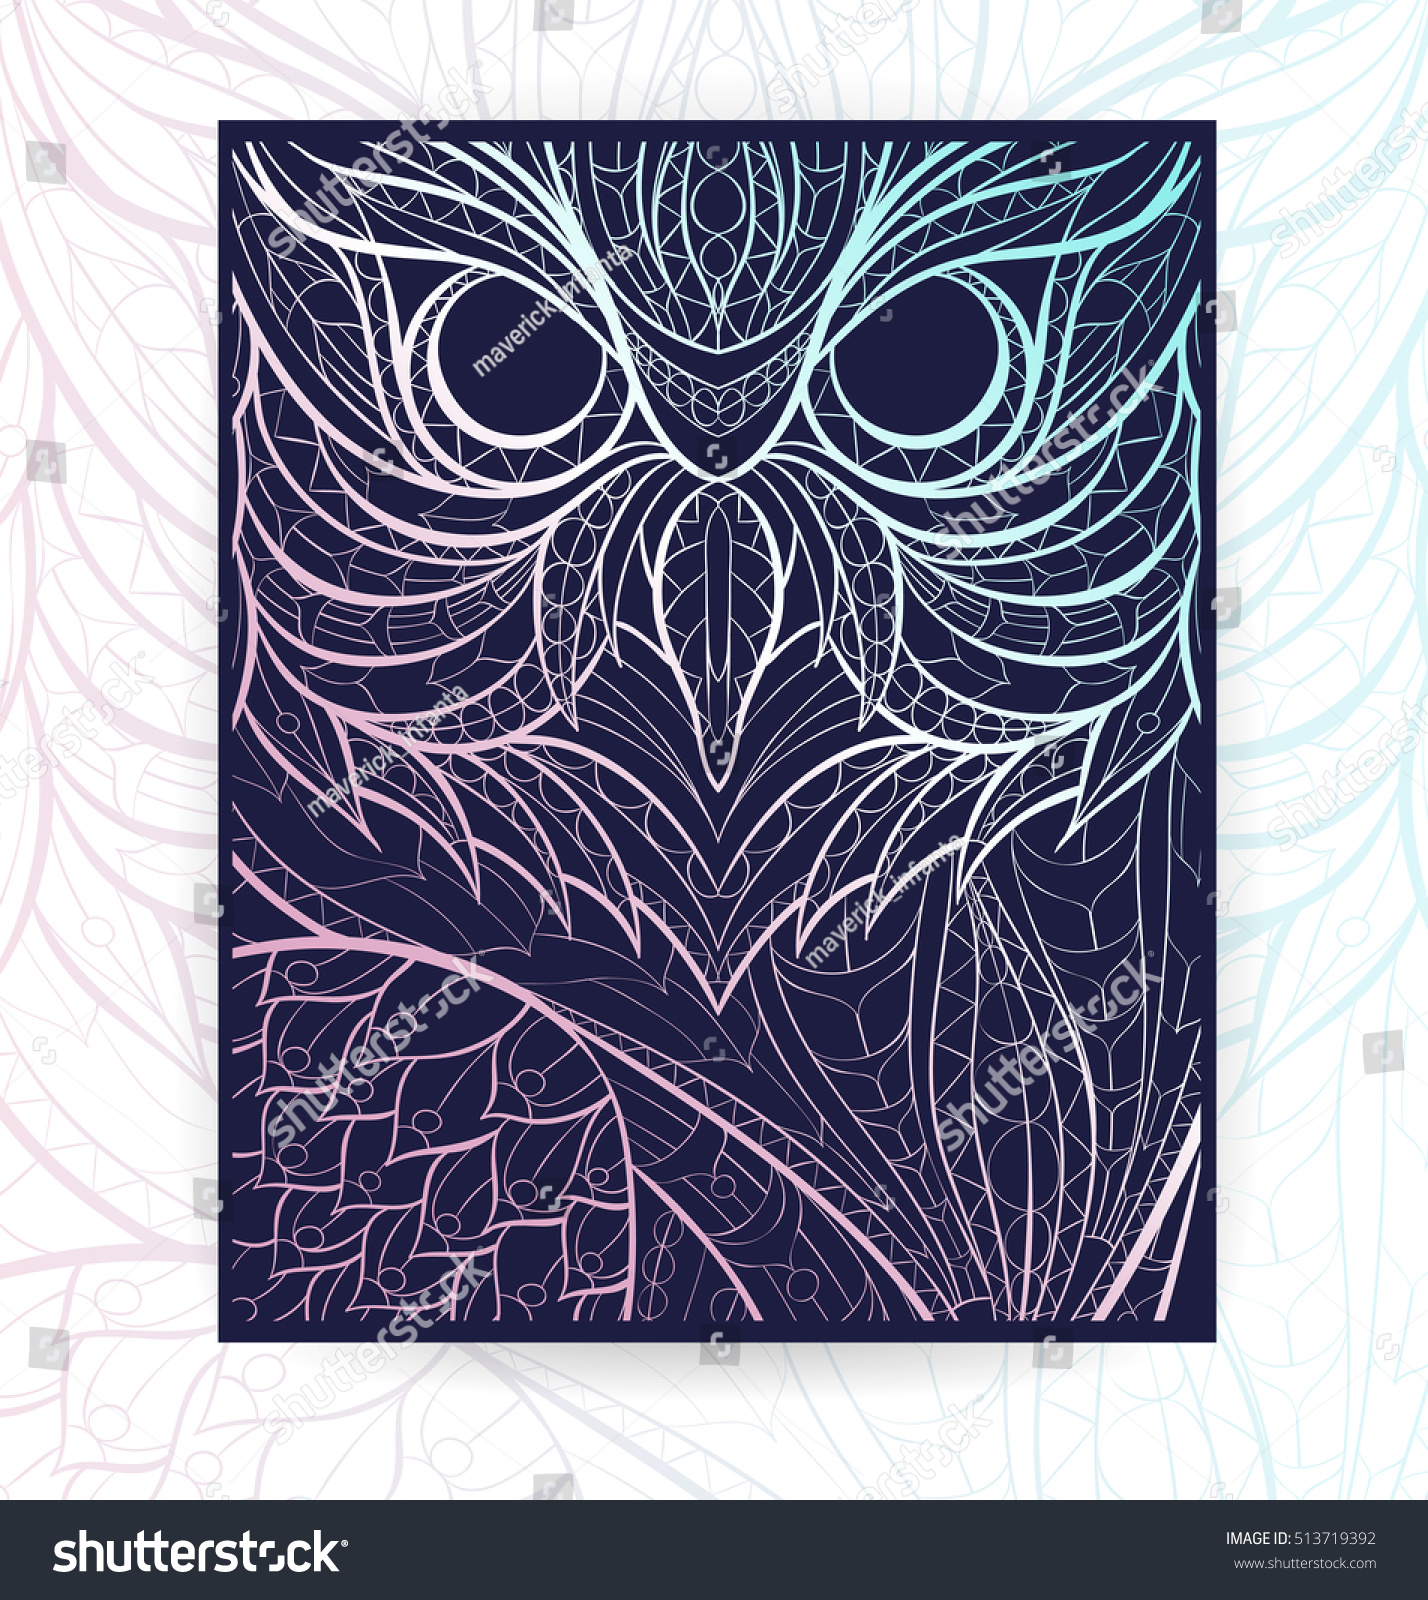 flyer template patterned owl tattoo design stock vector 513719392 shutterstock. Black Bedroom Furniture Sets. Home Design Ideas